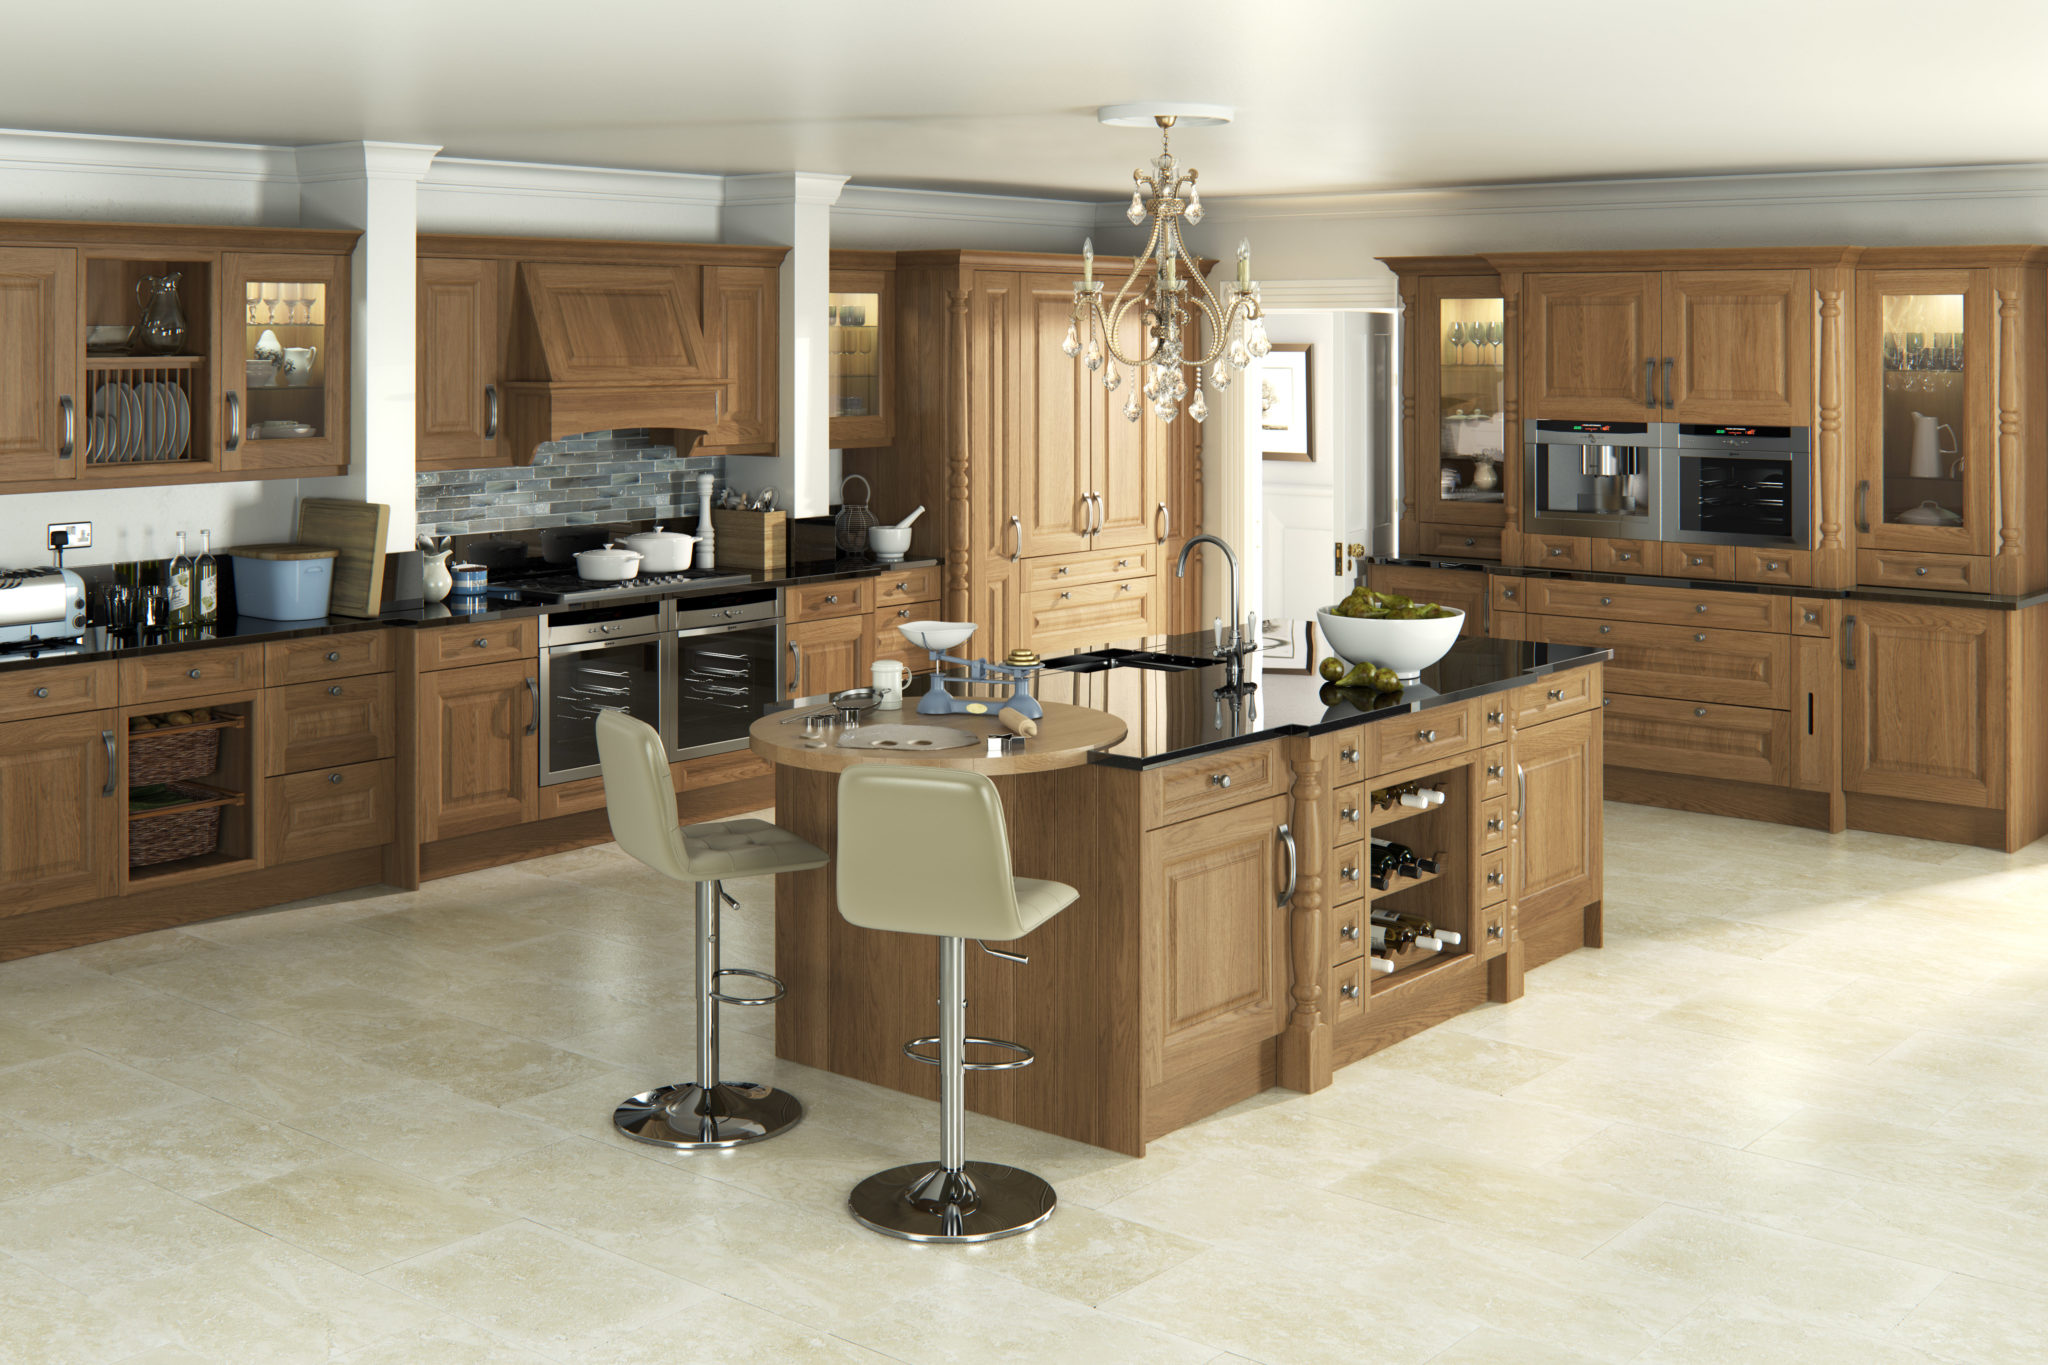 kitchen designers - free design service - exclusive designs